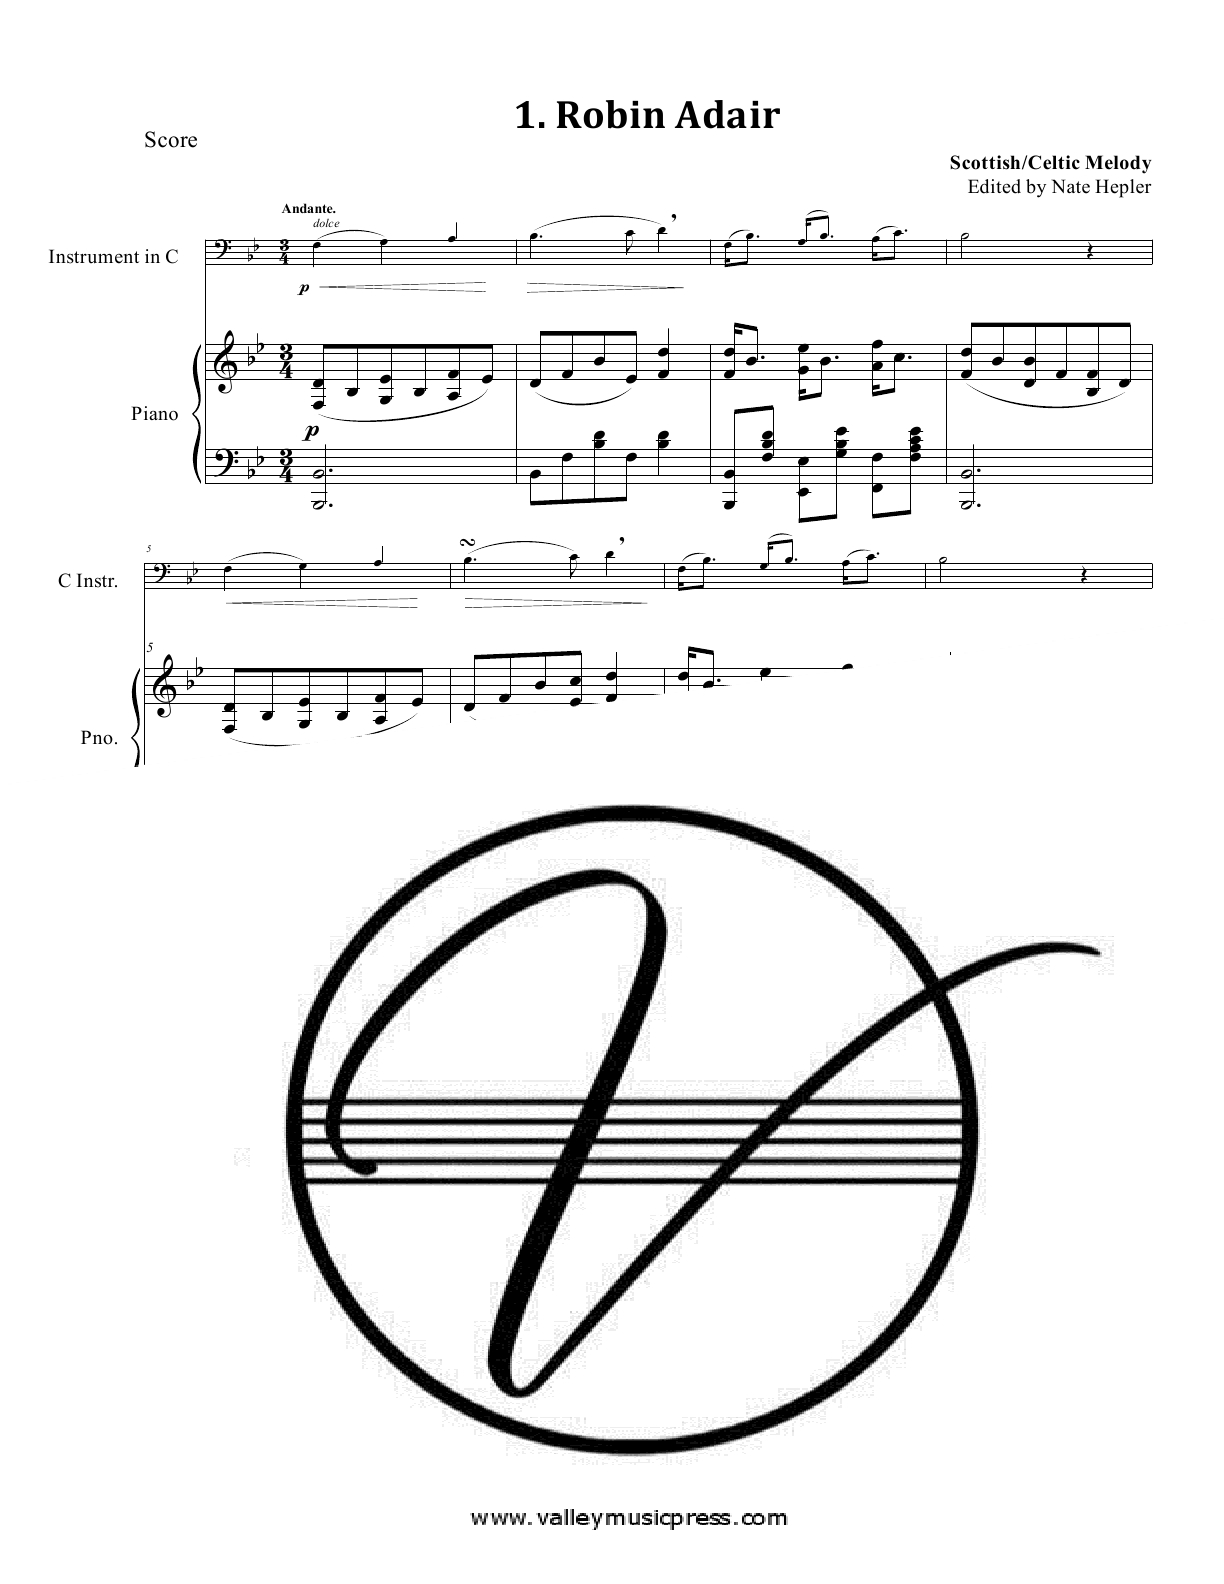 Arban Art of Phrasing Piano Accompaniment Vol. 2 No. 26-50 (Trb)